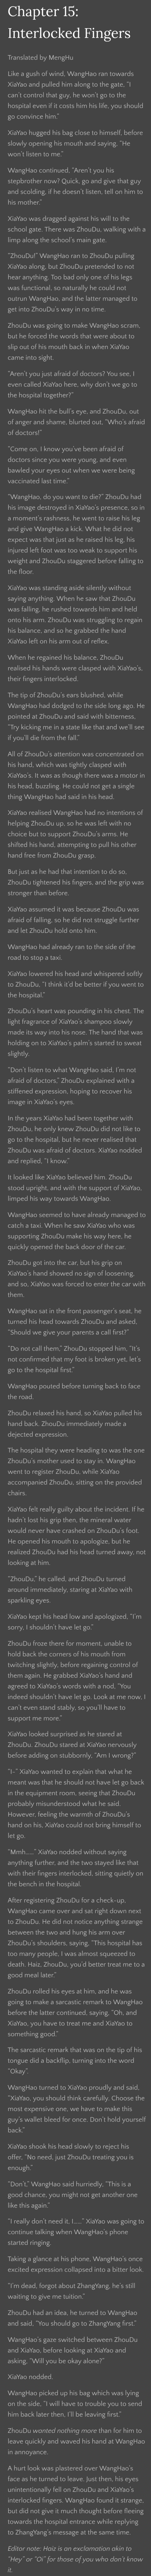 MW(R) Chapter 15